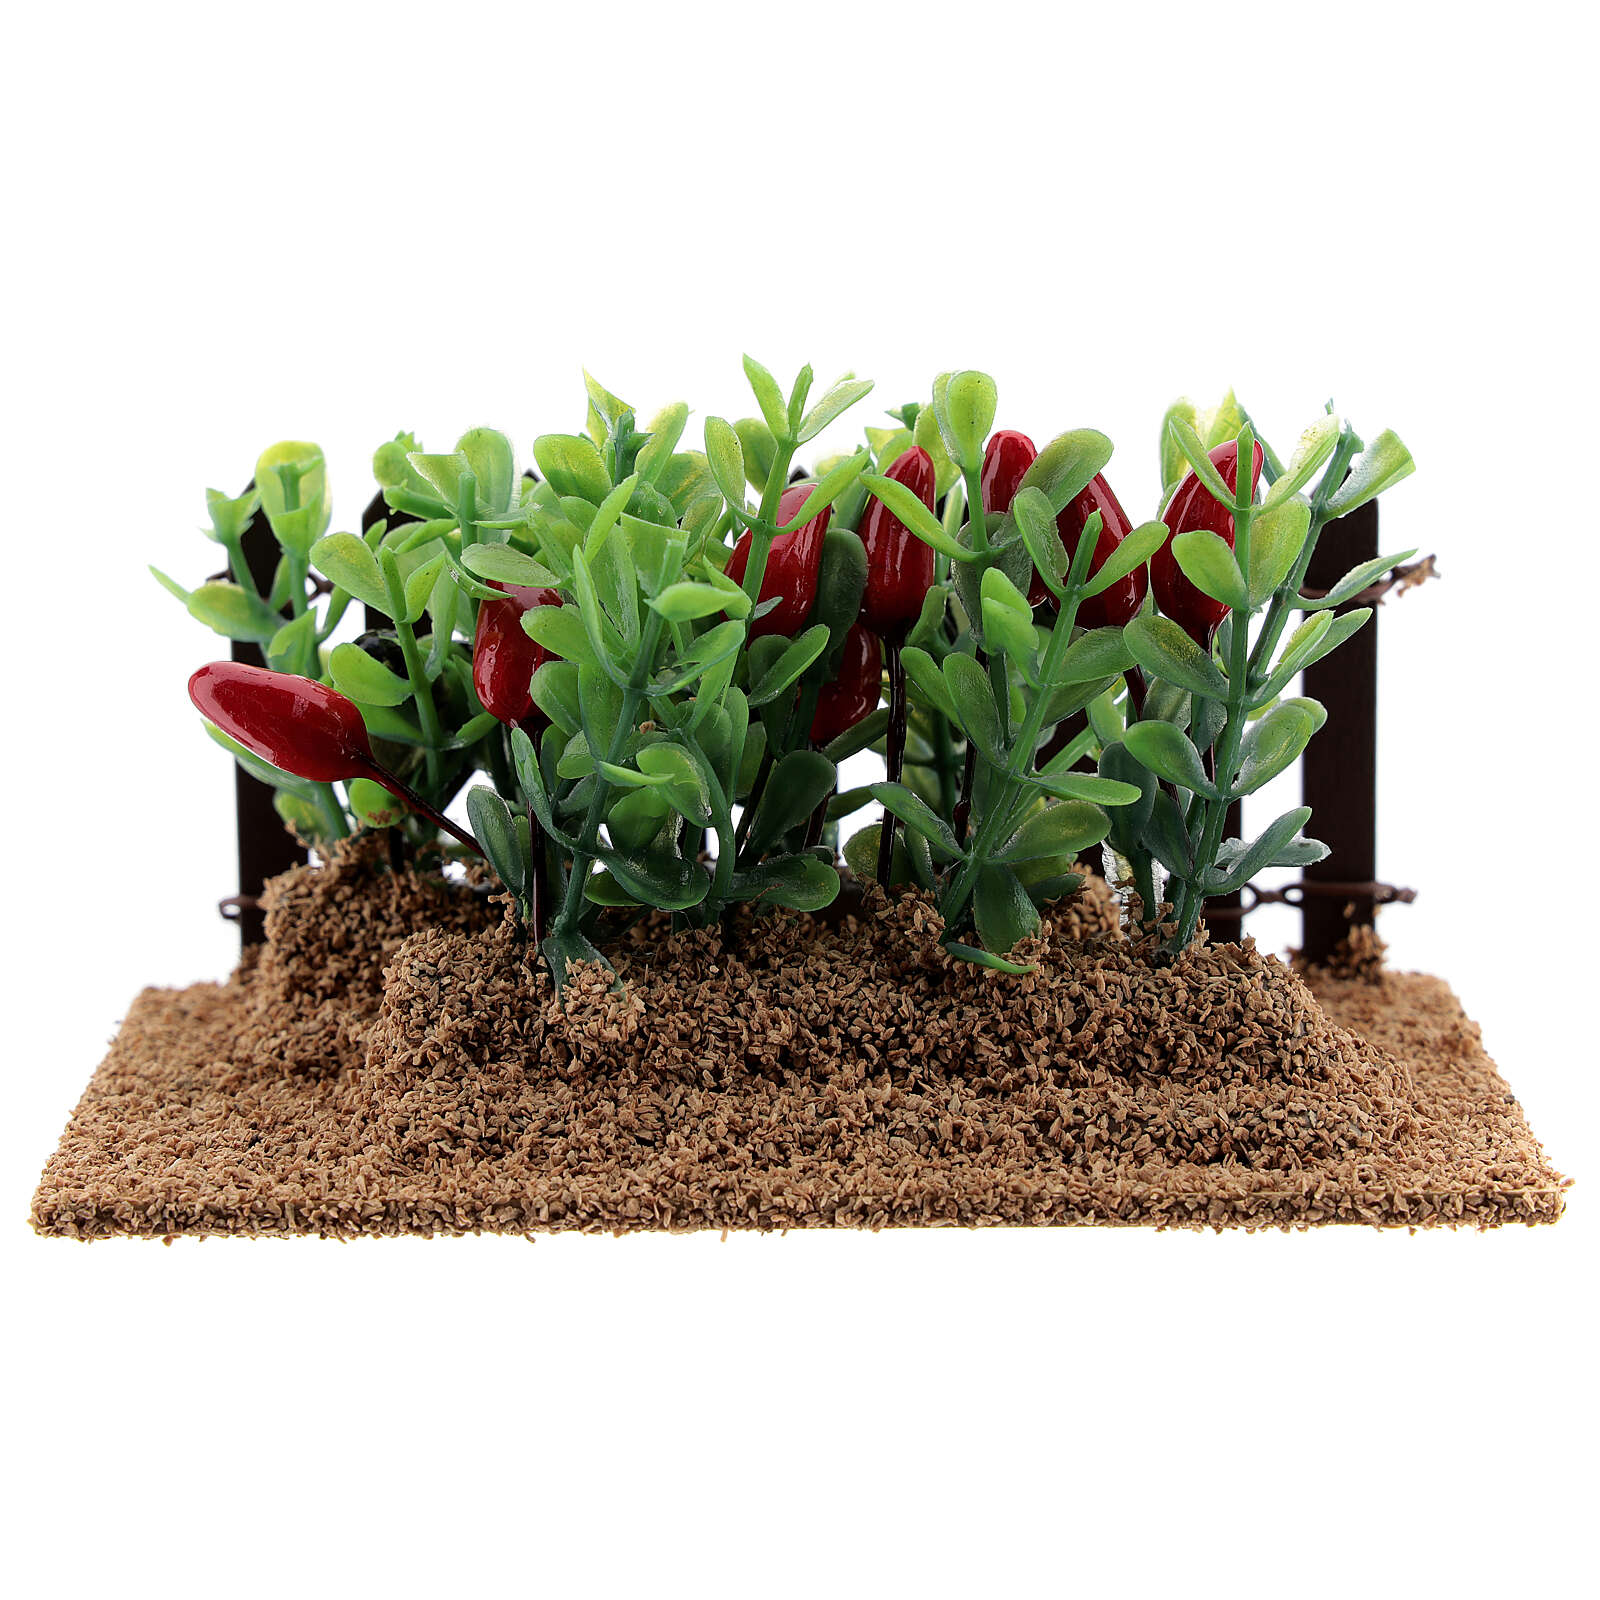 Vegetable garden peppers and eggplants for Nativity Scene with 12-14 cm figurines 4